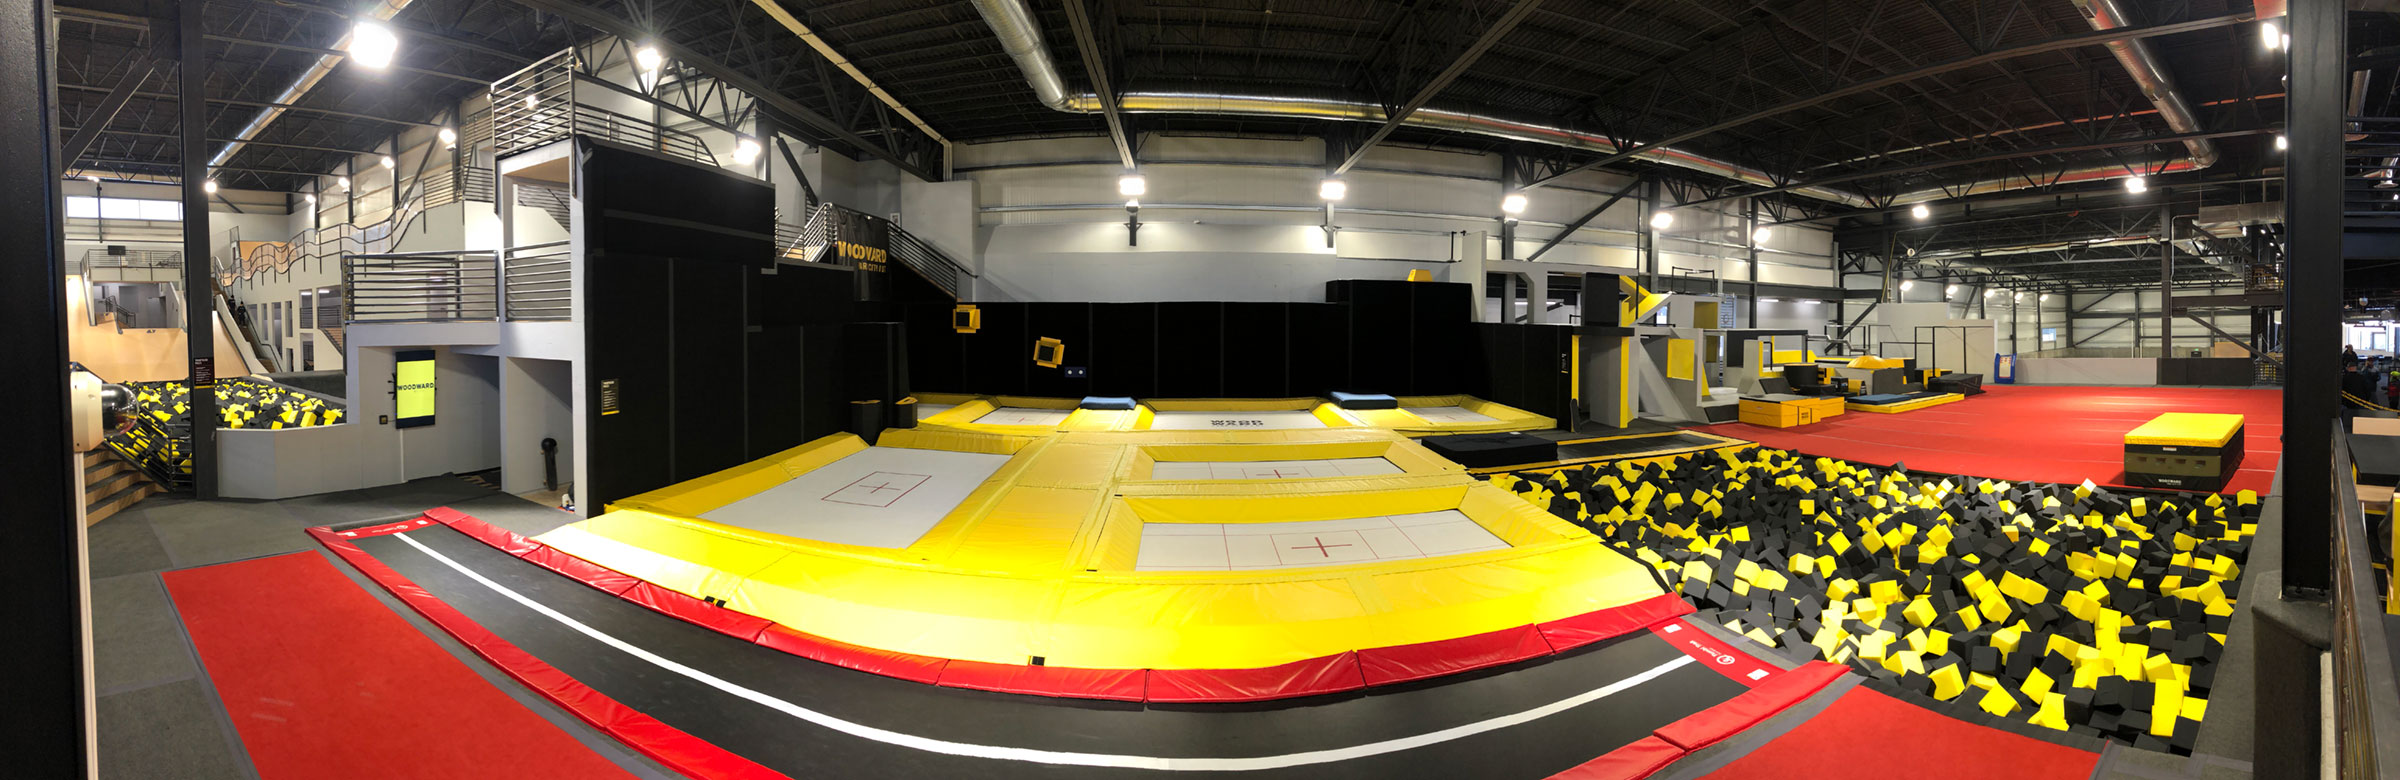 Competition grade trampolines at Woodward Park City